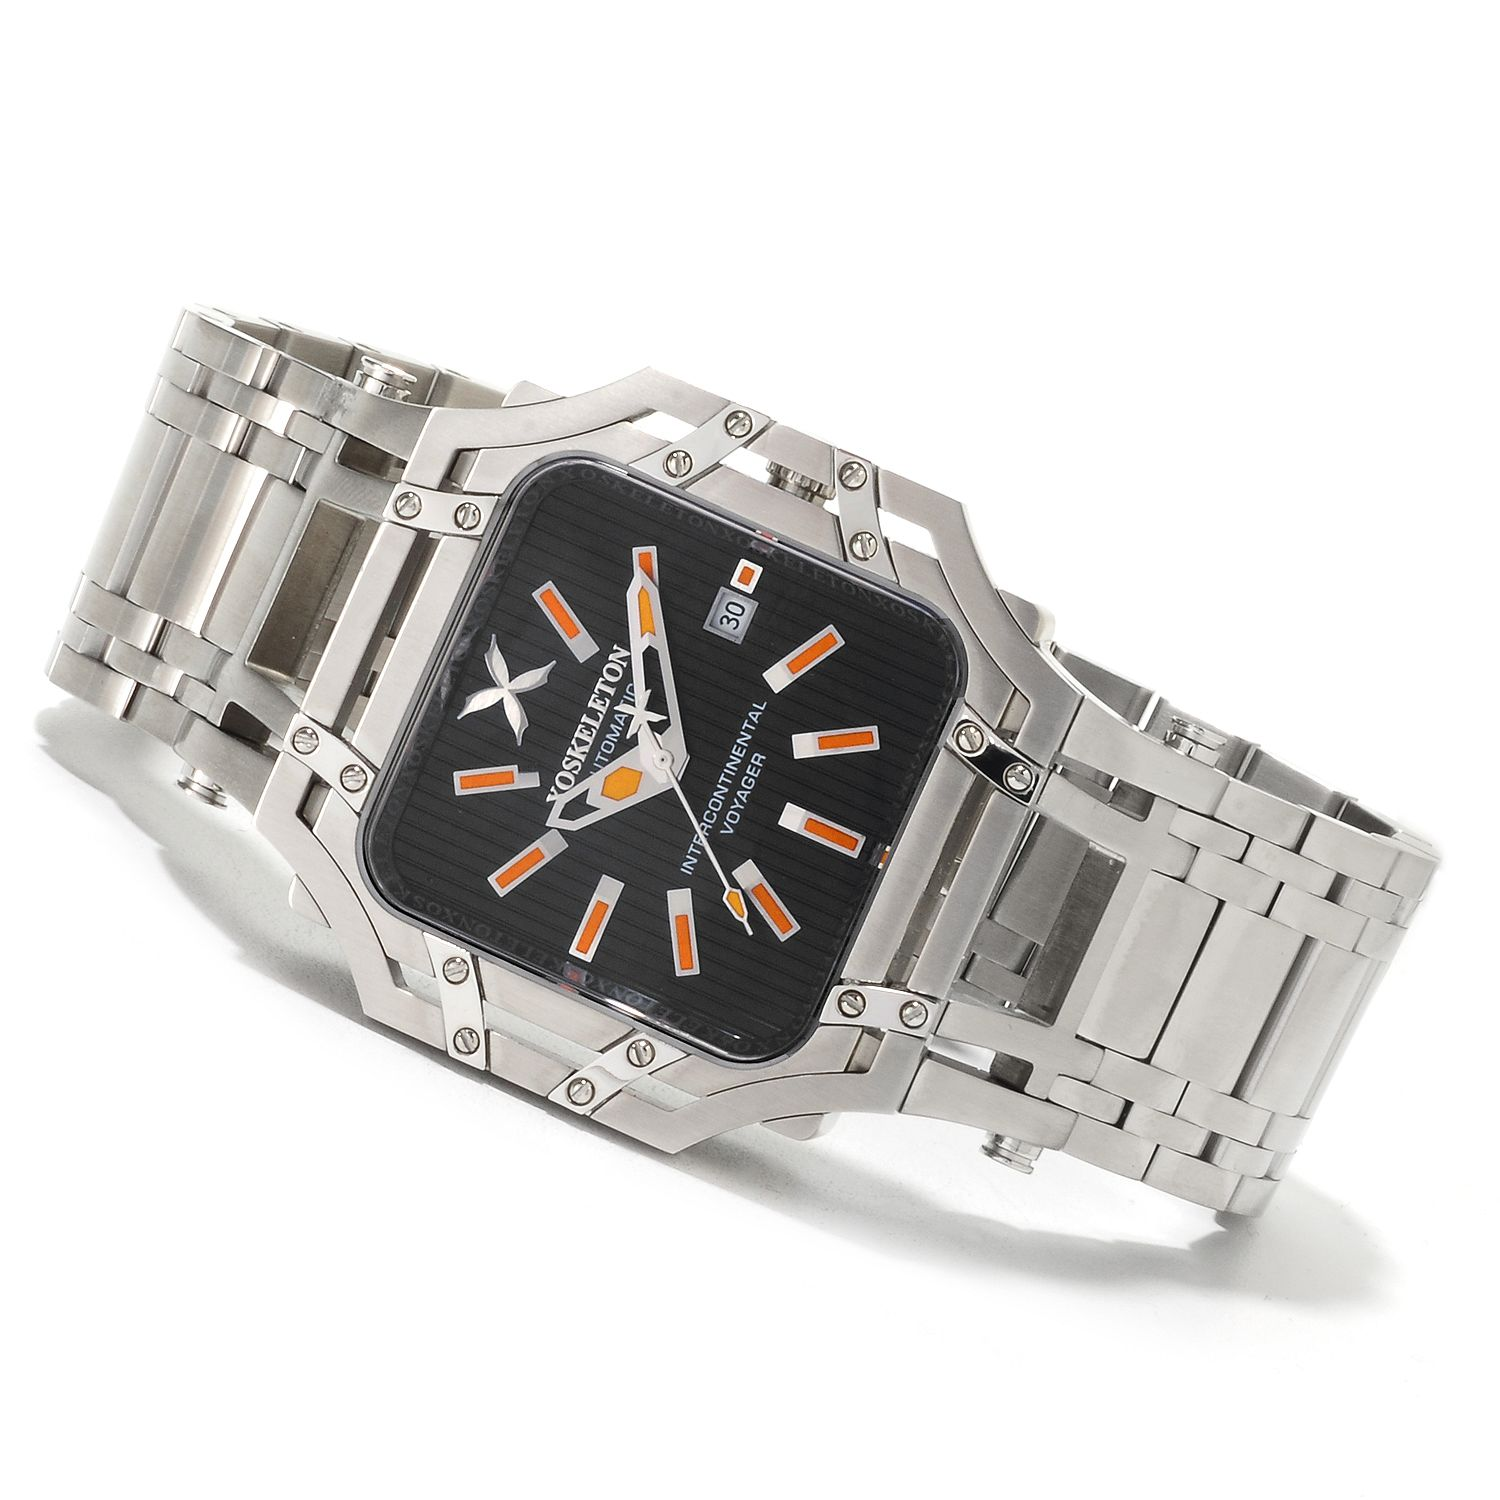 XOSkeleton XOS-XI2 XOSkeleton Intercontinental Voyager Automatic Limited Edition 22pcs Black Dial Orange Accents Watch